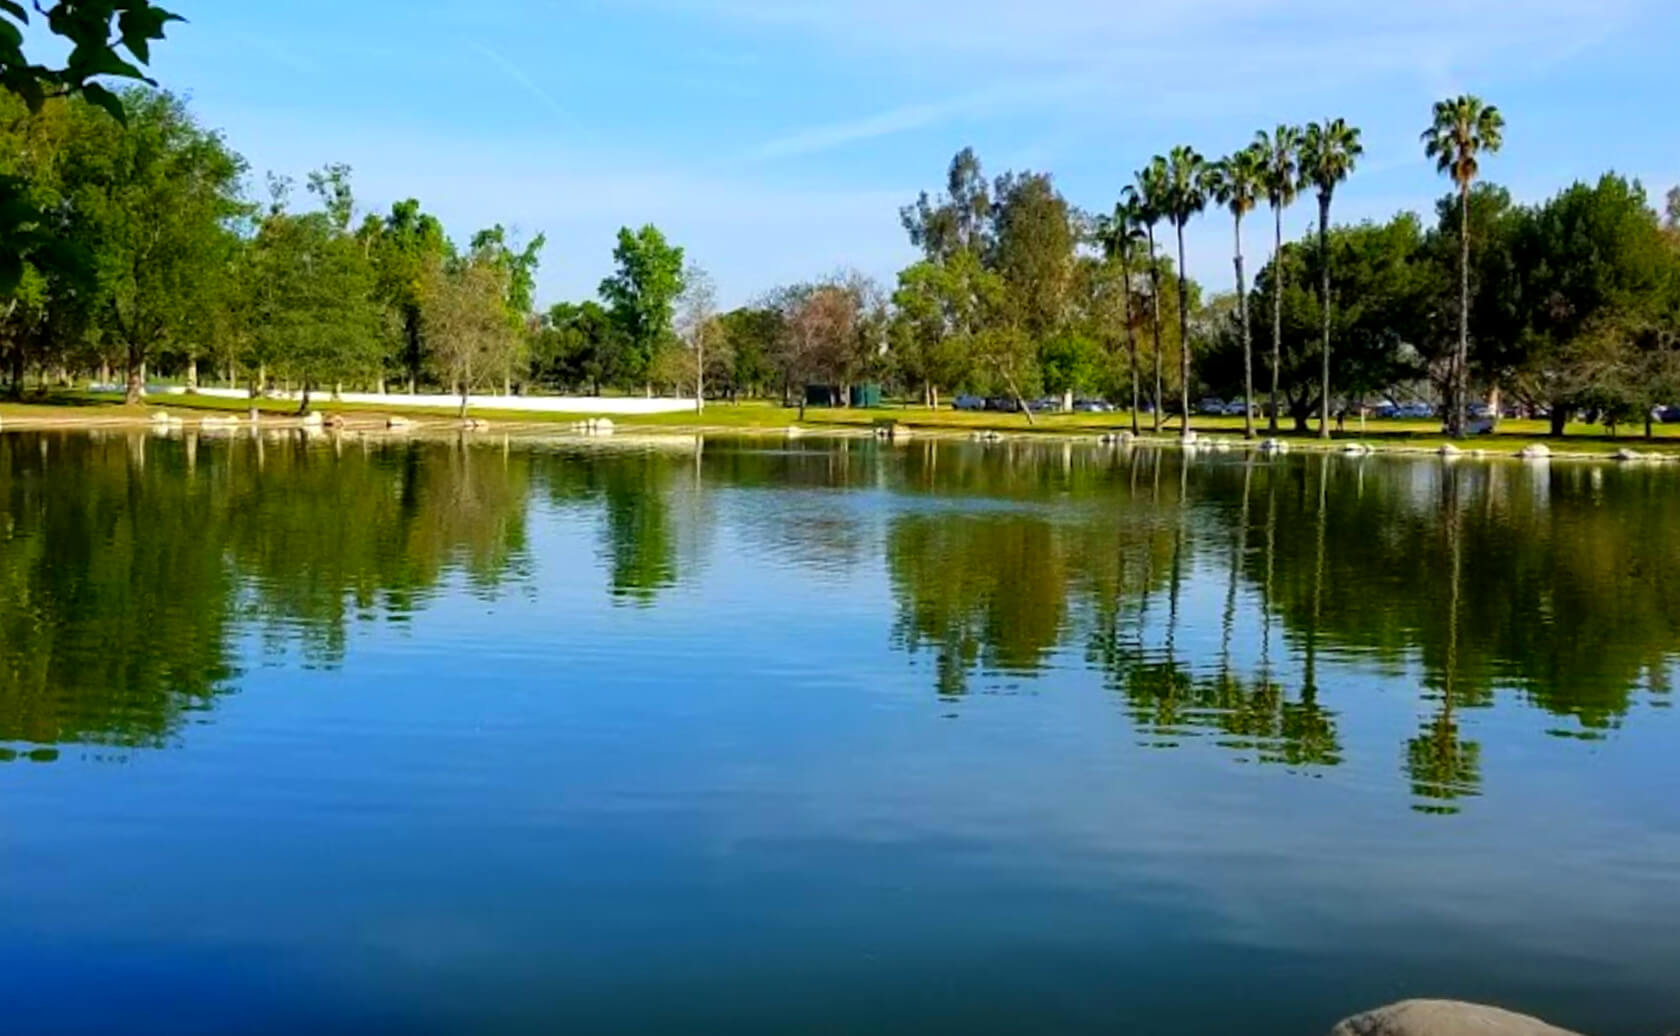 Mile-Square-Park-Lake-Fishing-Guide-Report-Fountain-Valley-CA-03